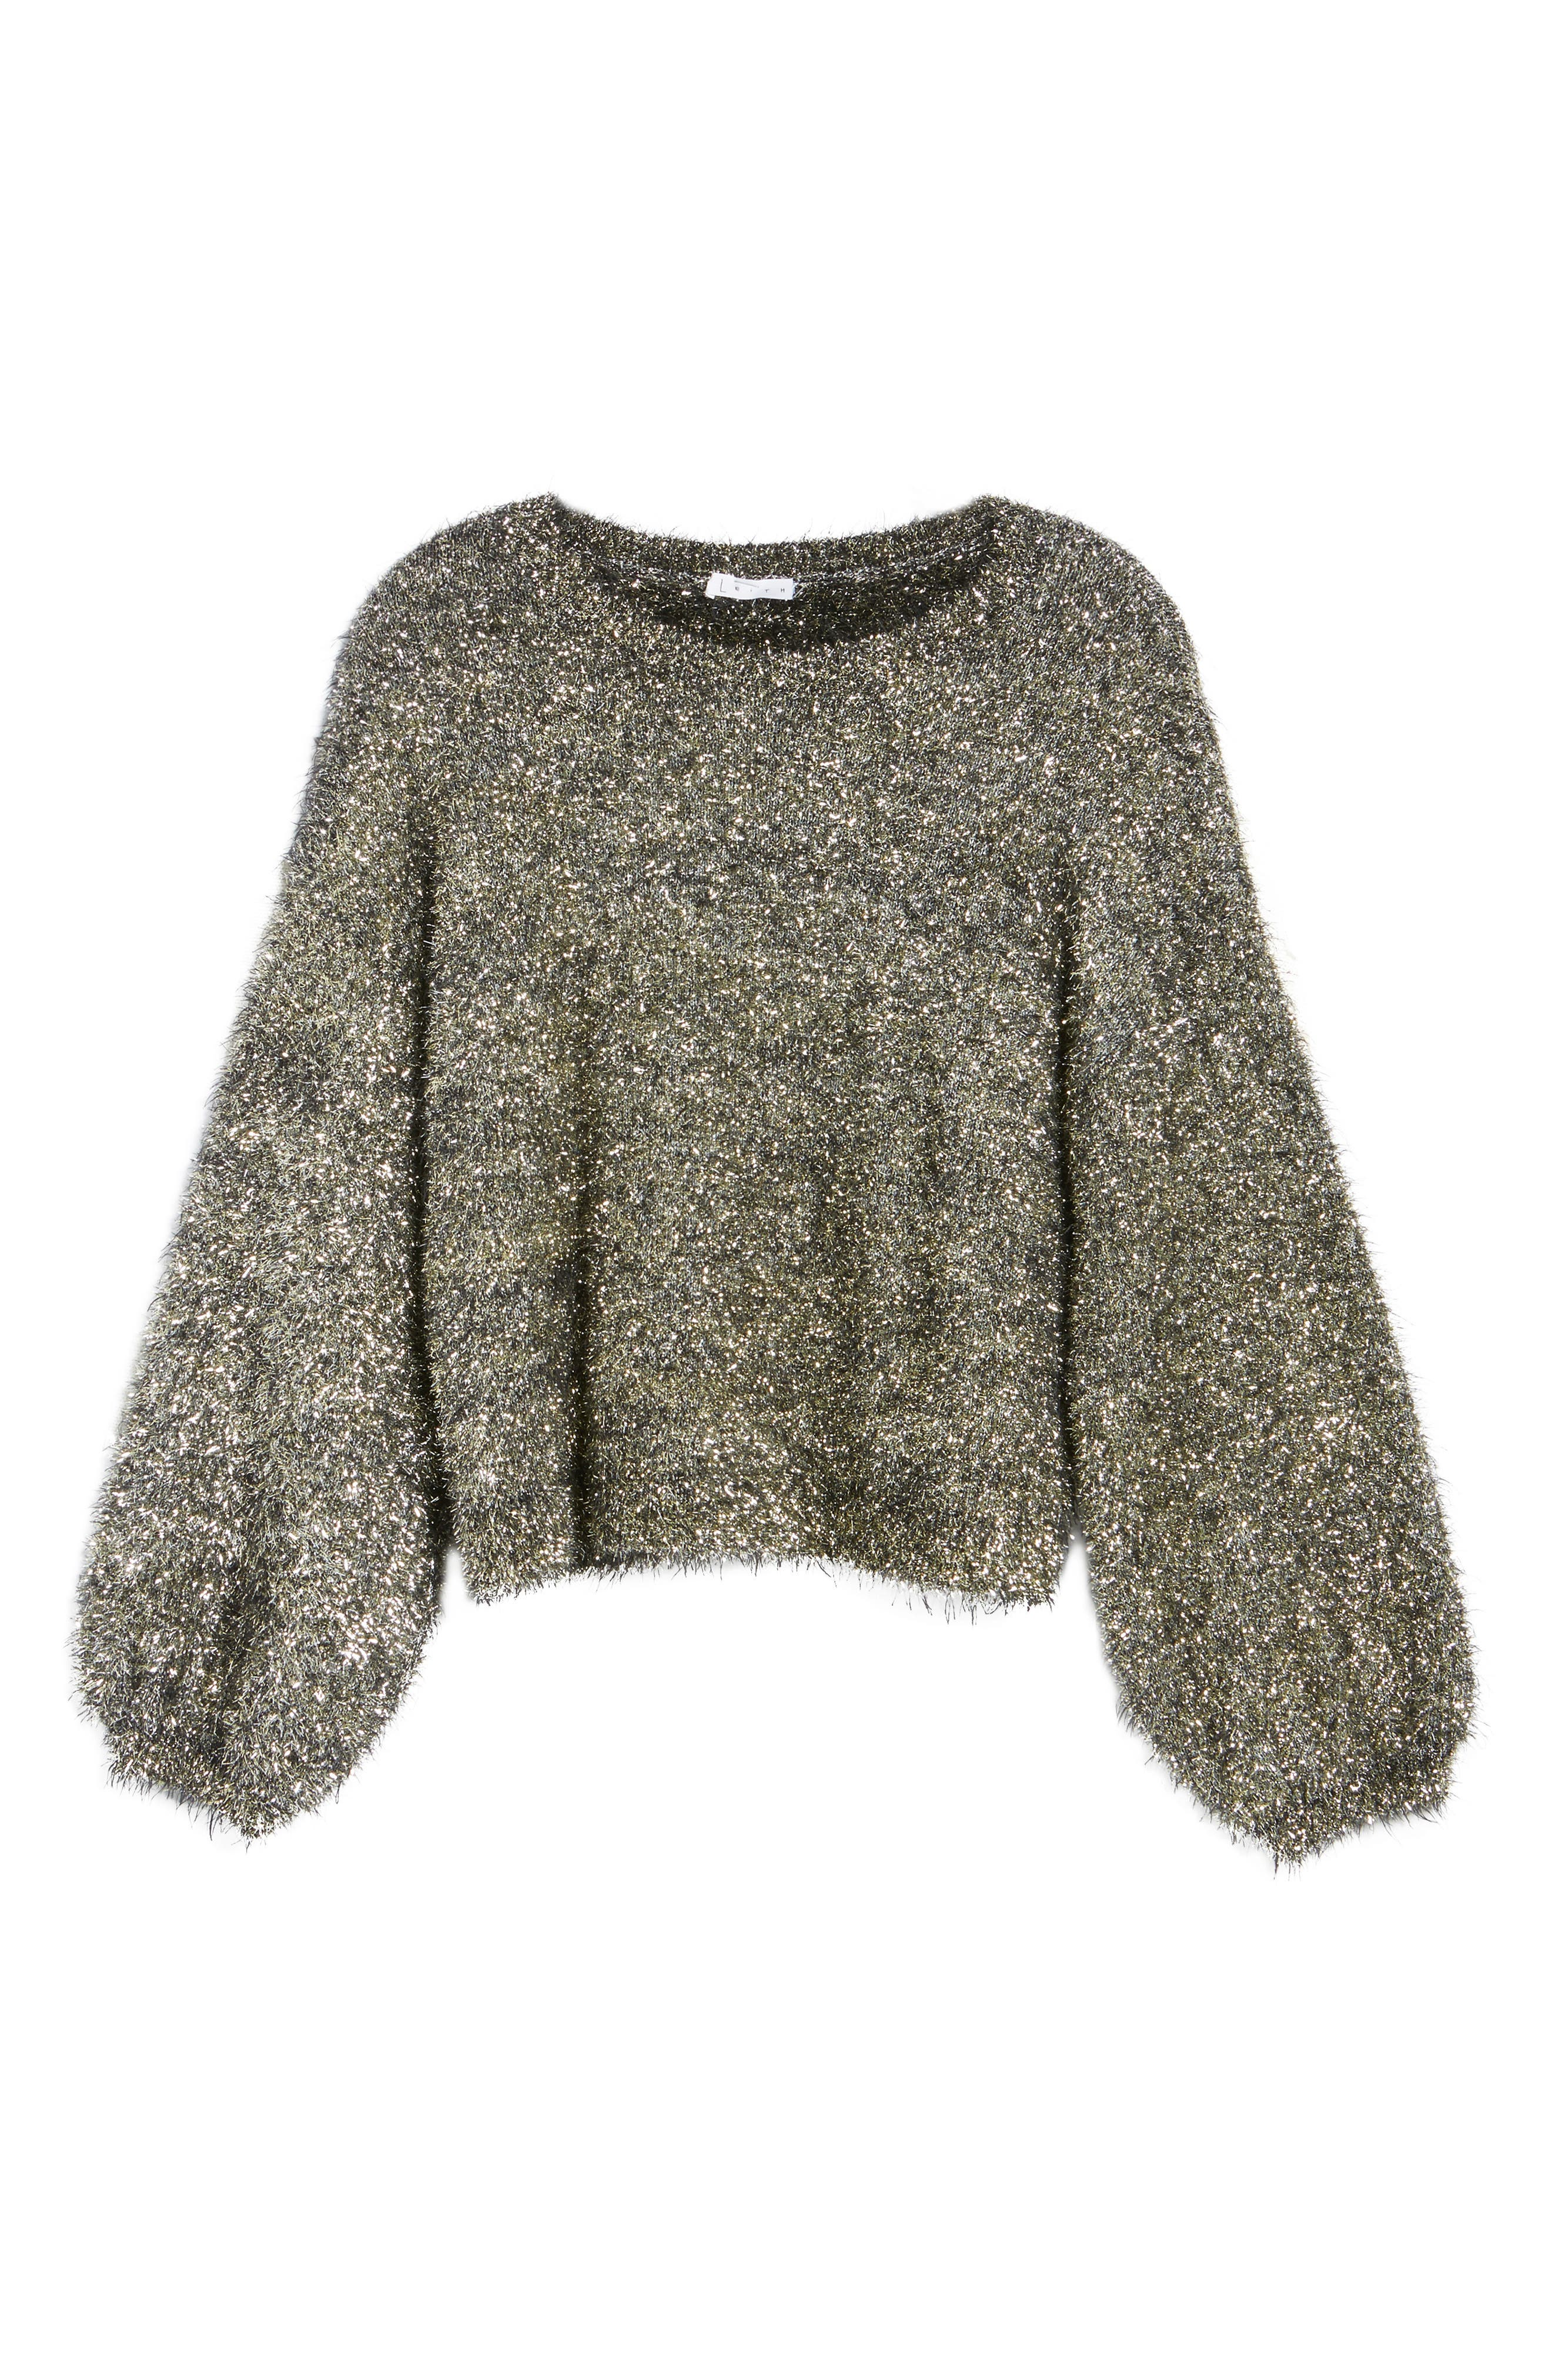 Fluffy Sparkle Sweater,                             Alternate thumbnail 6, color,                             710